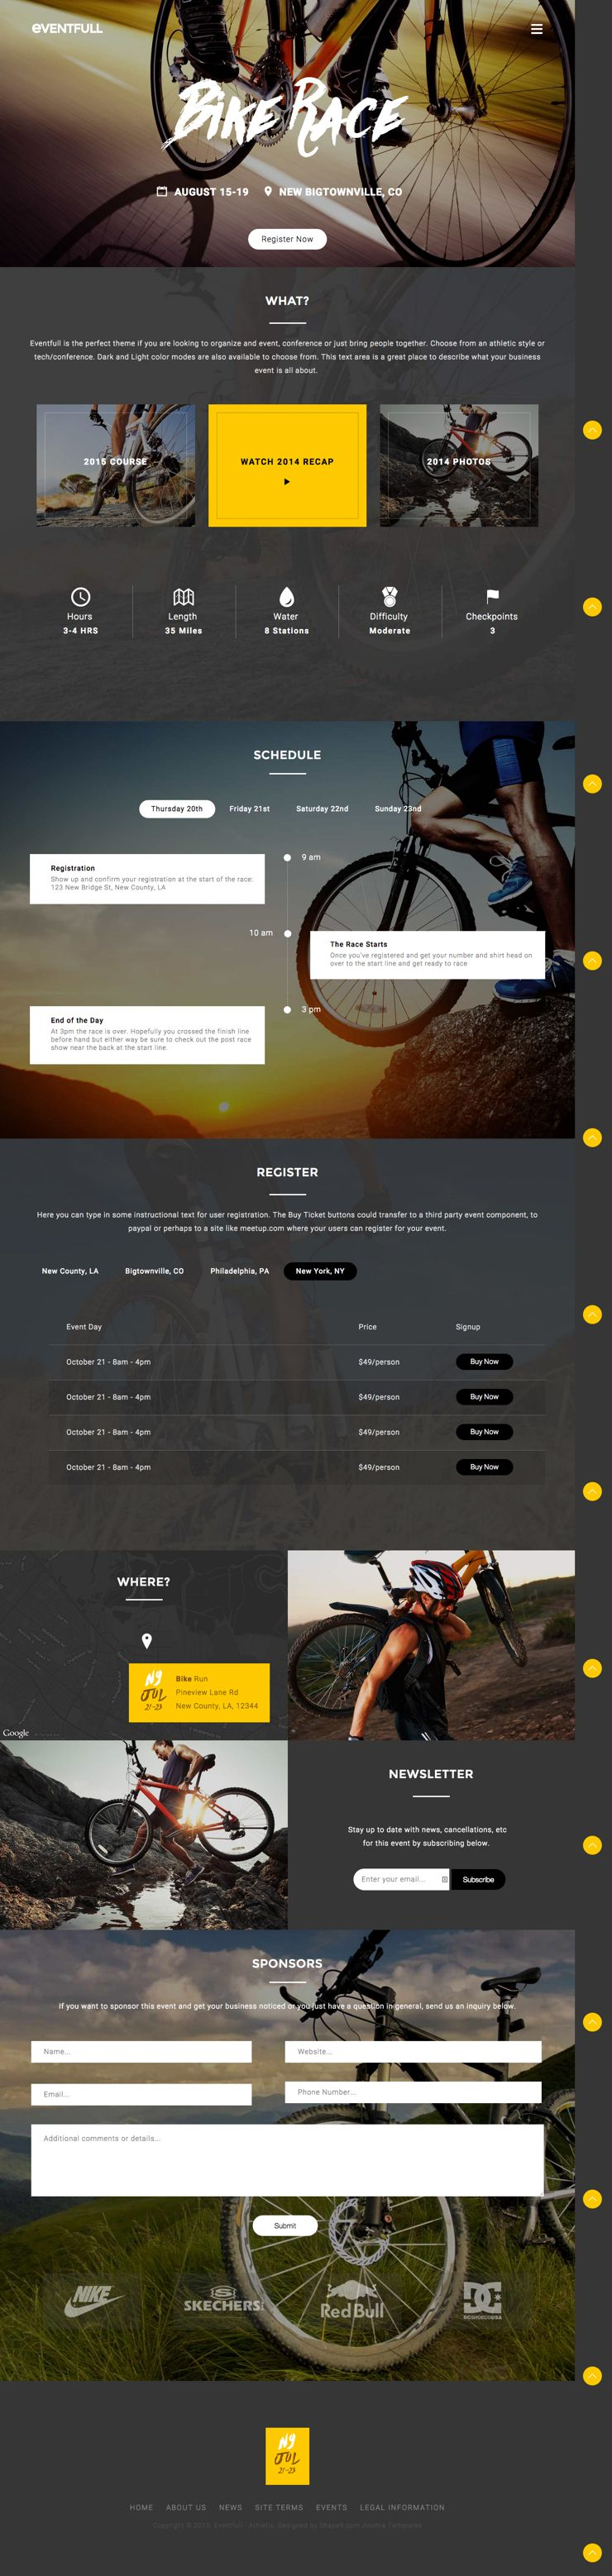 Eventfull Joomla Athletic Style Template